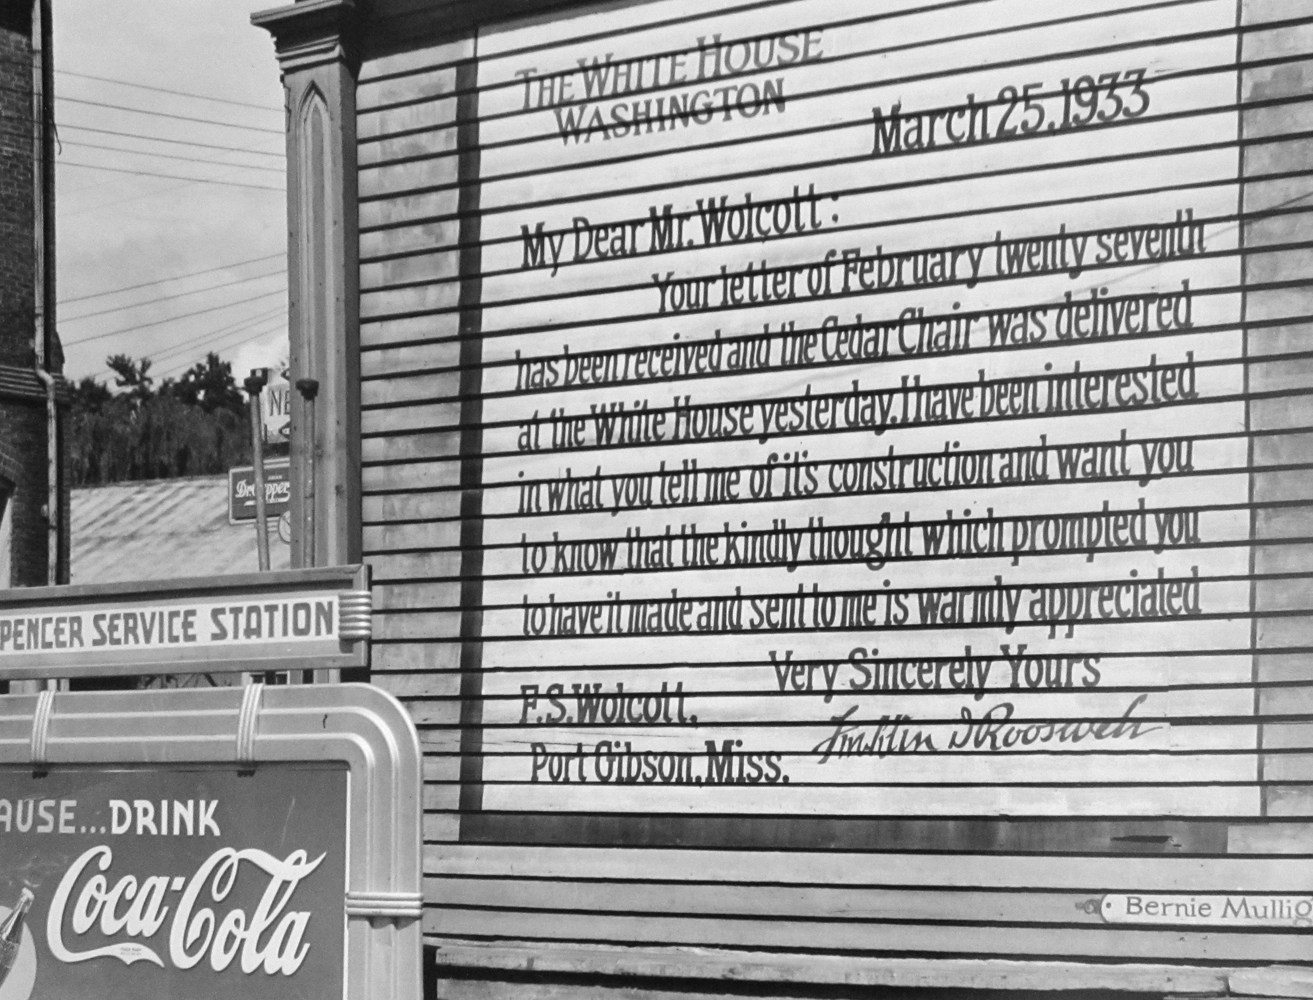 Marion Post Wolcott, Facsimile of a letter written by President Roosevelt to a resident painted on the side of a building. Port Gibson, Mississippi, 1940, gelatin silver print, signed, 8 x 10 inches